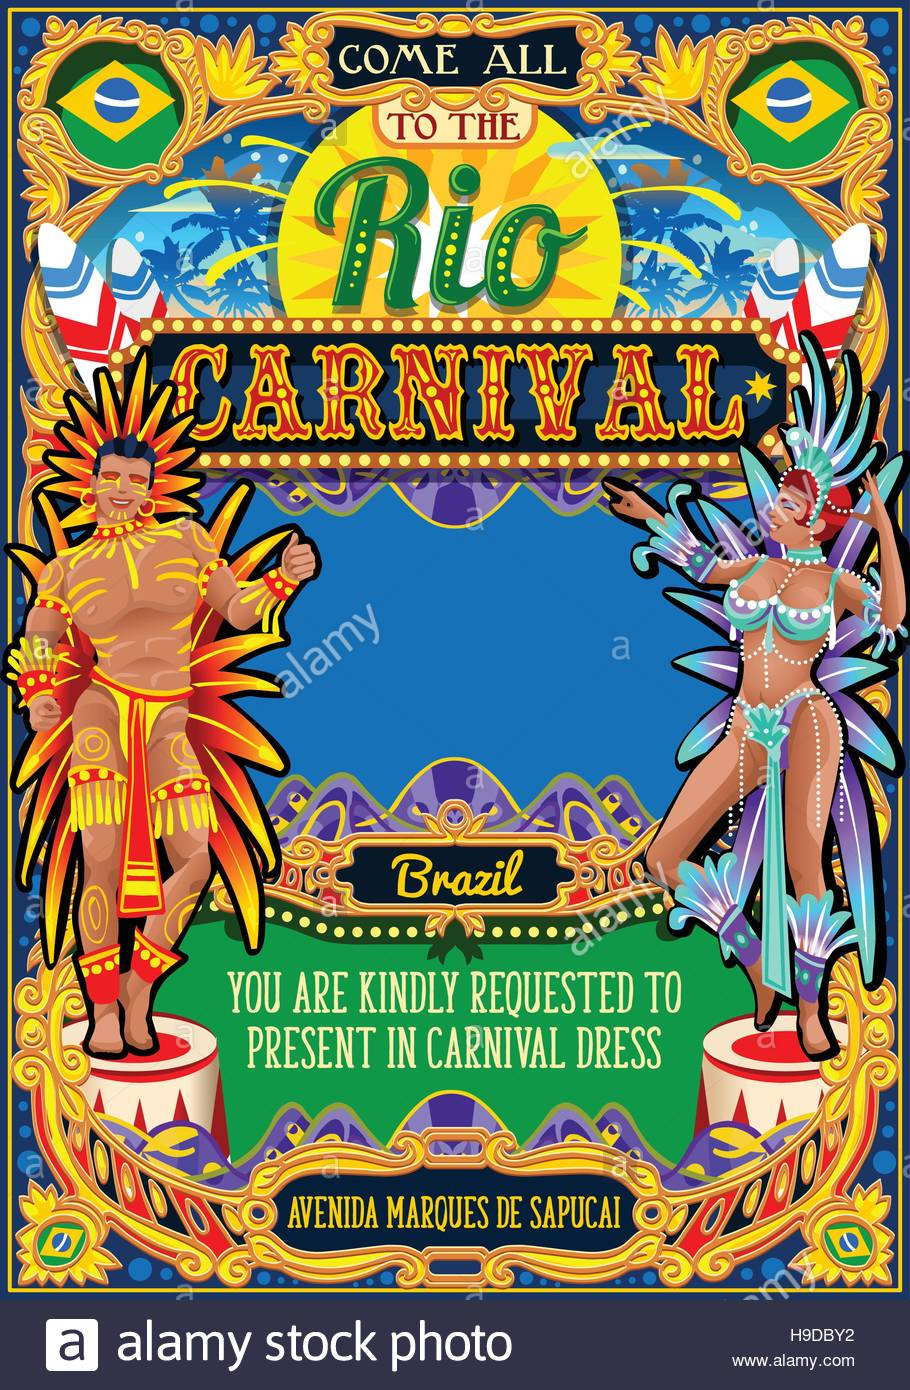 Rio carnaval festival poster illustration brazil night show rio carnaval festival poster illustration brazil night show carnival party parade masquerade invitation card template latin dance event with samba o stopboris Images